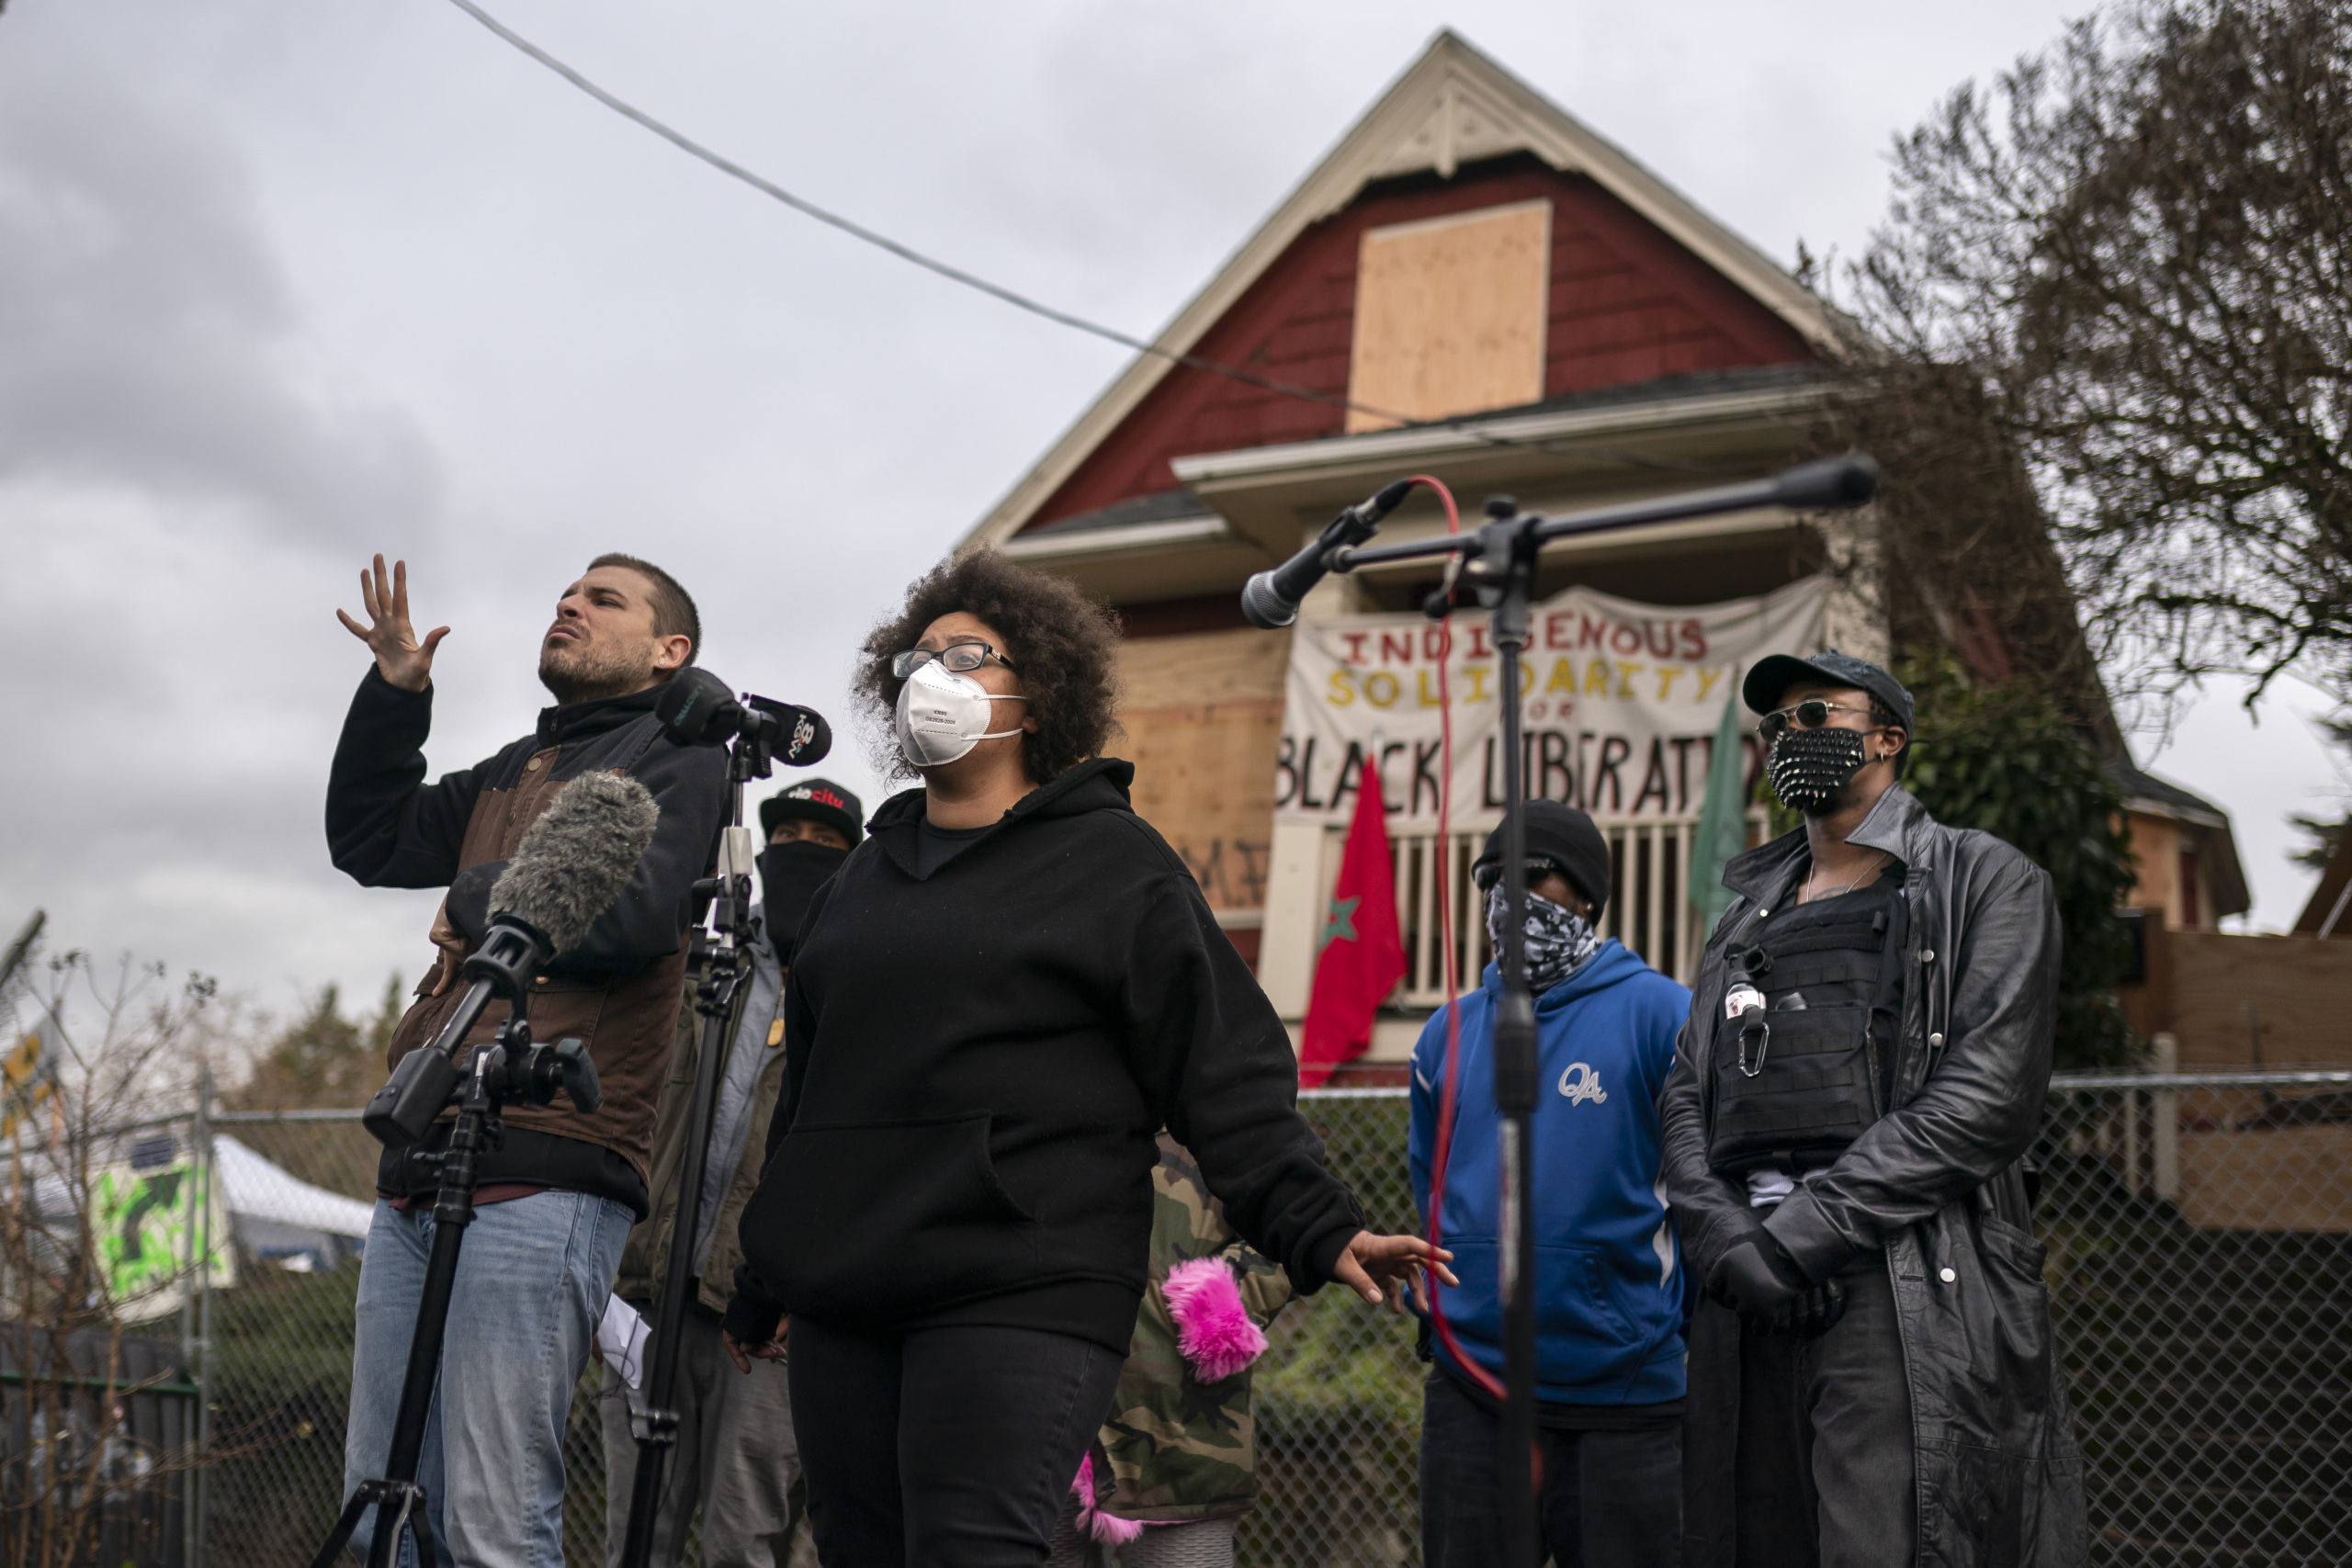 Activists and the Kinney family speak to the press about the citys attempted eviction of residents from the Red House on Mississippi Ave on December 9, 2020 in Portland, Oregon. (Nathan Howard/Getty Images)